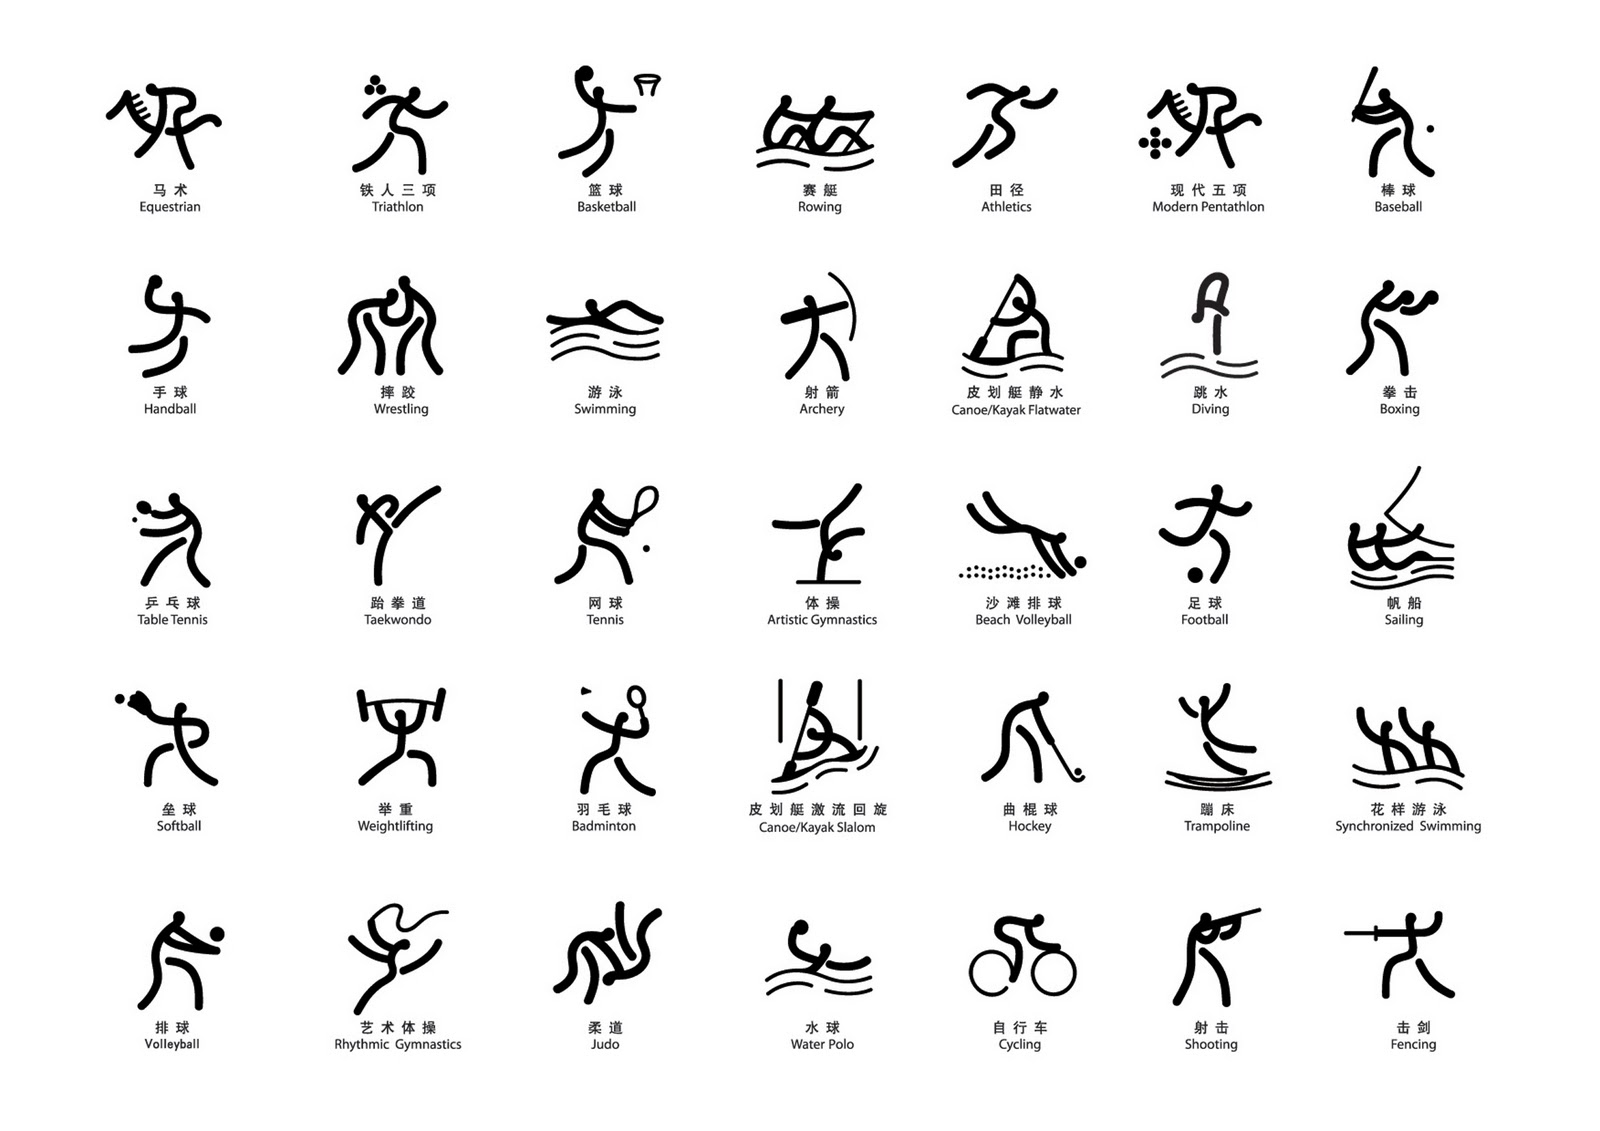 Beijing 2008 Pictograms